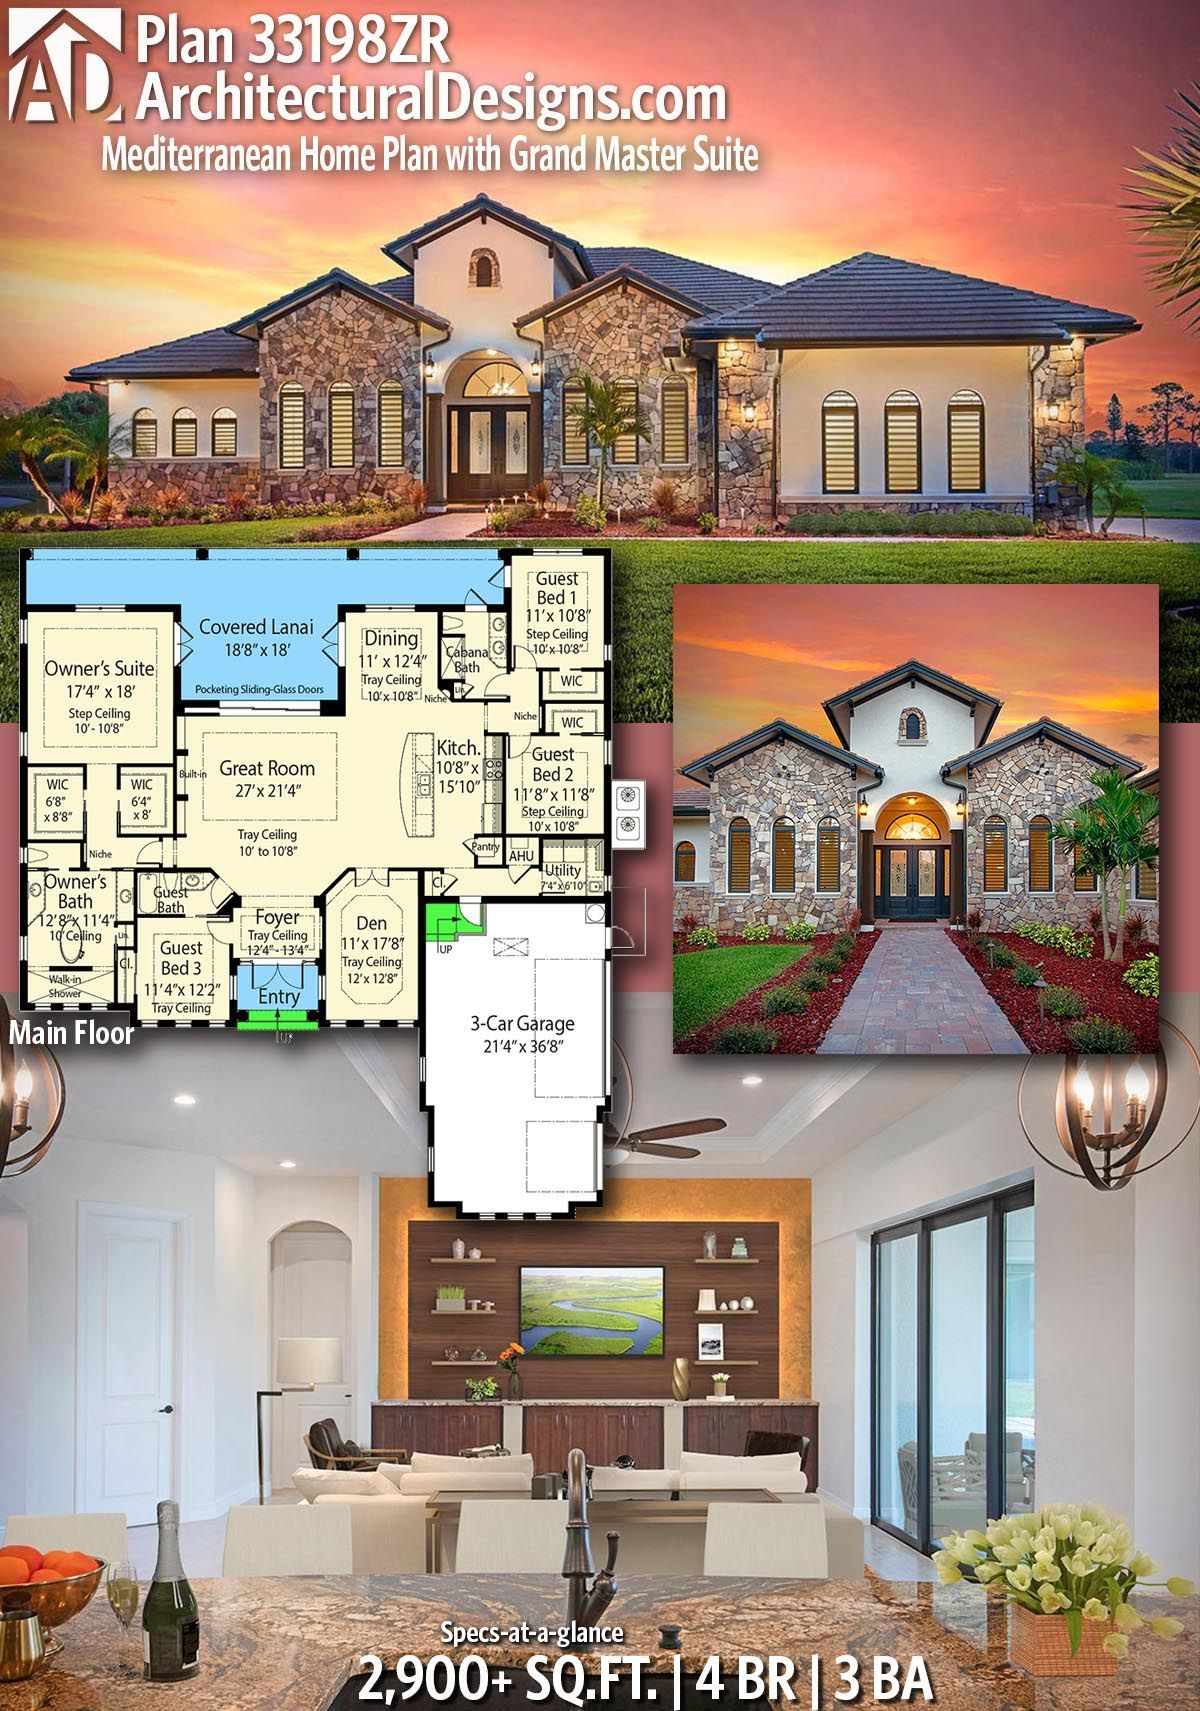 Plan 33198ZR: Mediterranean Home Plan with Grand Master ... on eco-friendly house plans, amish house plans, blueprint house plans, most efficient house plans, energy efficient house plans, unique small house plans, medium house plans, cheap house plans,